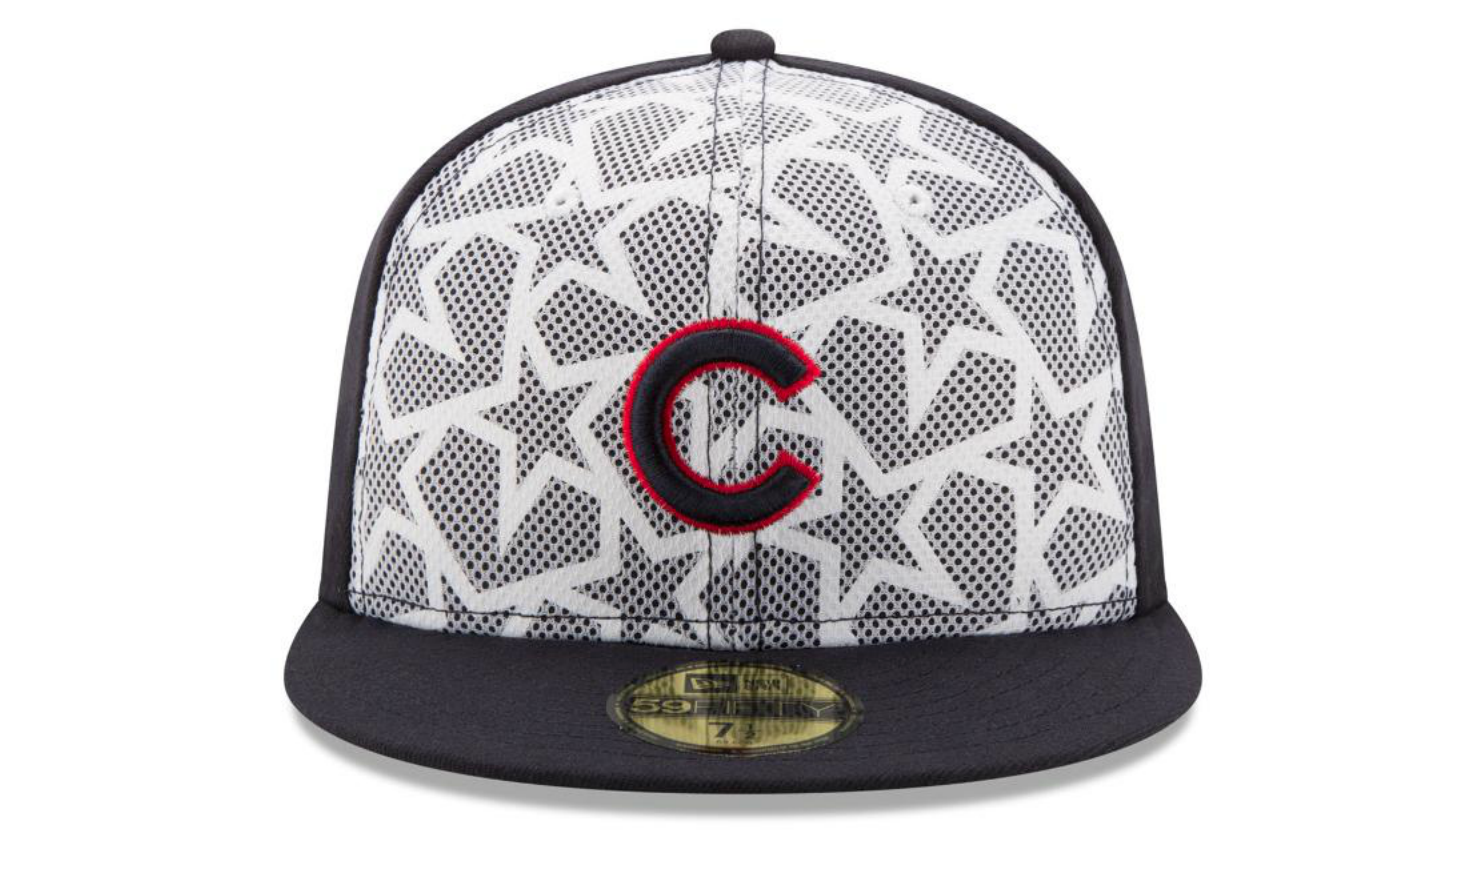 fd7a23ab74c MLB Releases 2016 Special Event Jerseys And Caps - Bleed Cubbie Blue